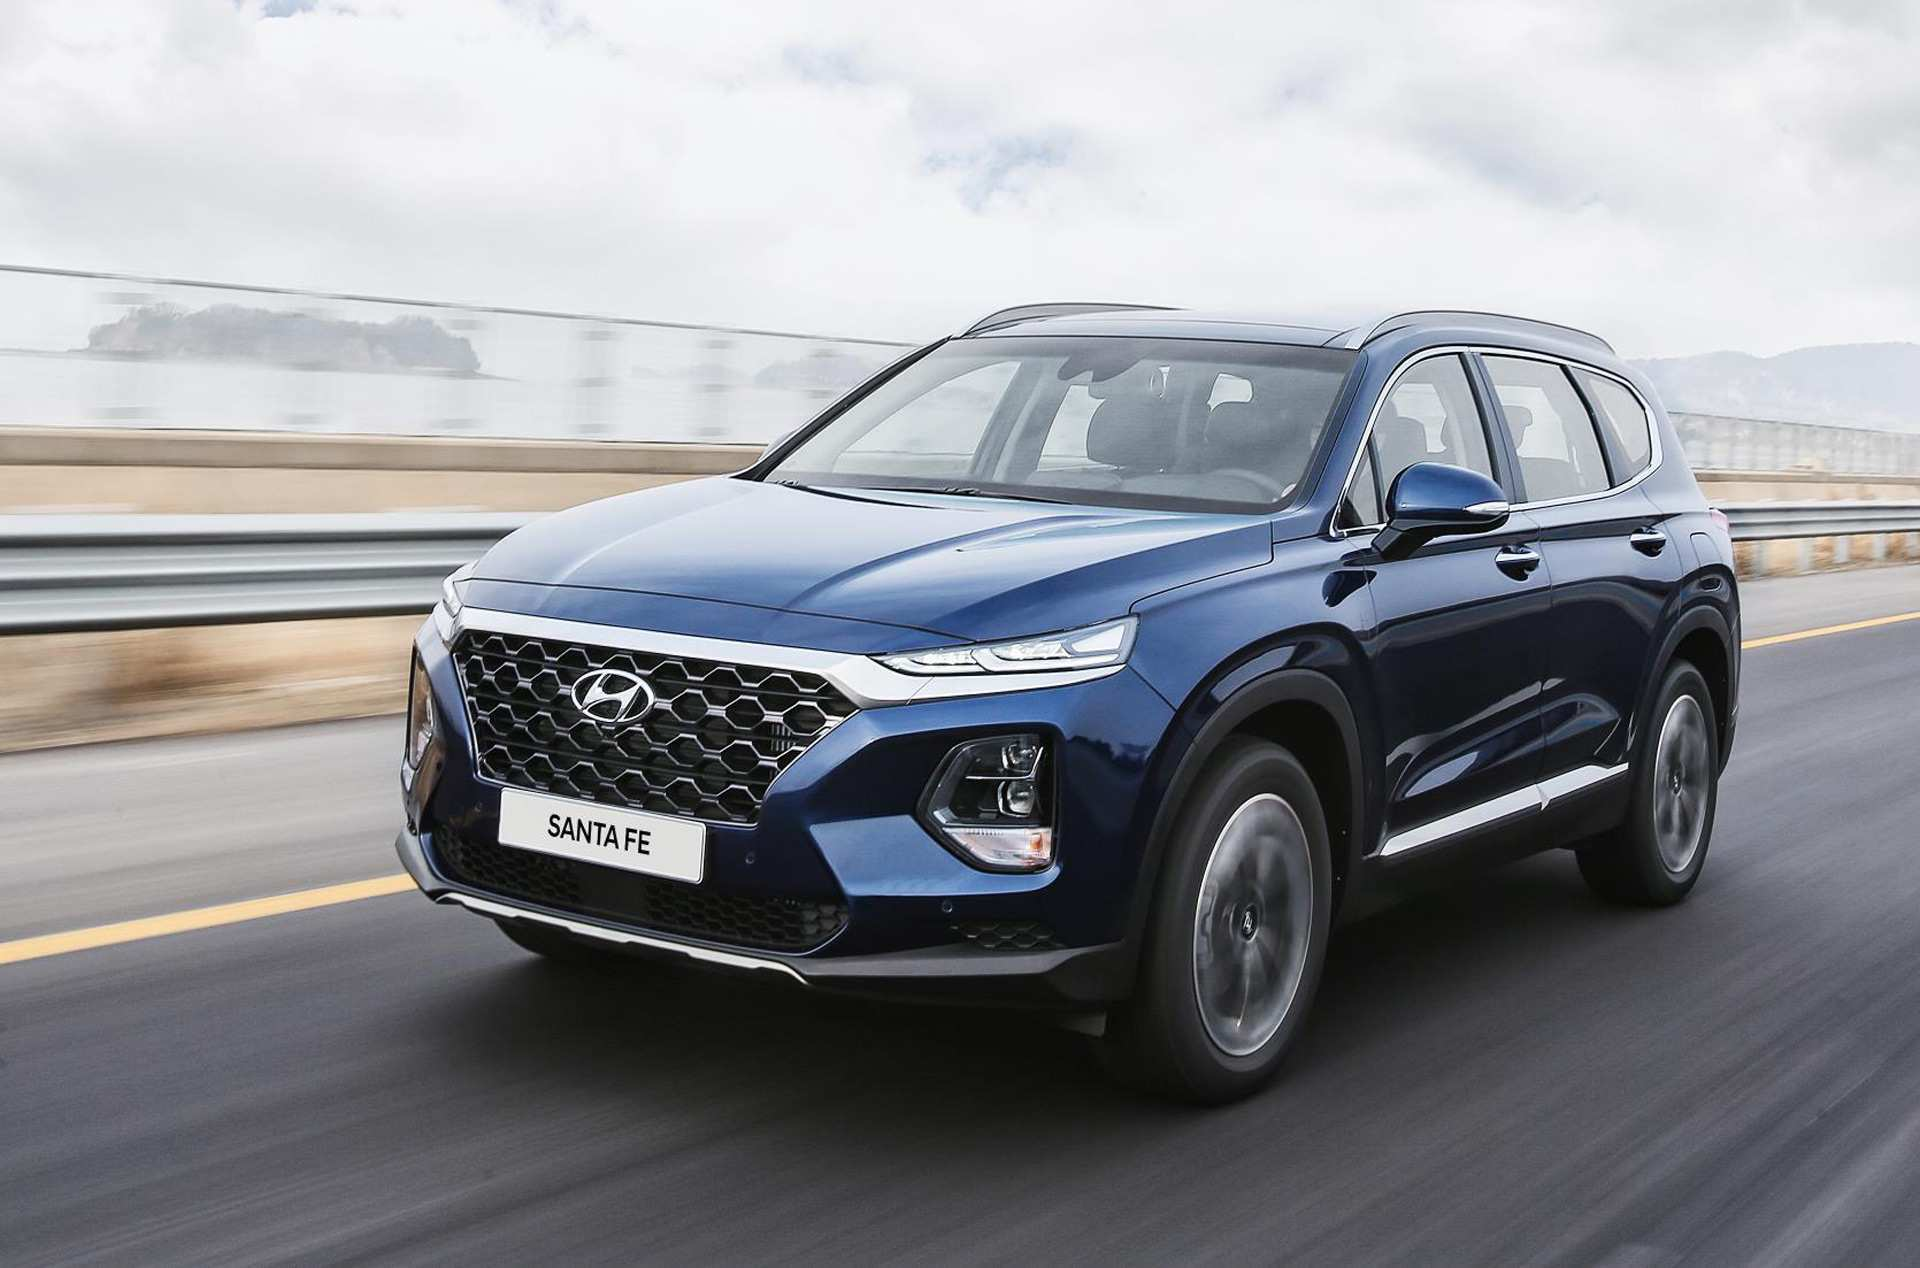 23 Gallery of 2020 Hyundai Santa Fe Sport Images with 2020 Hyundai Santa Fe Sport